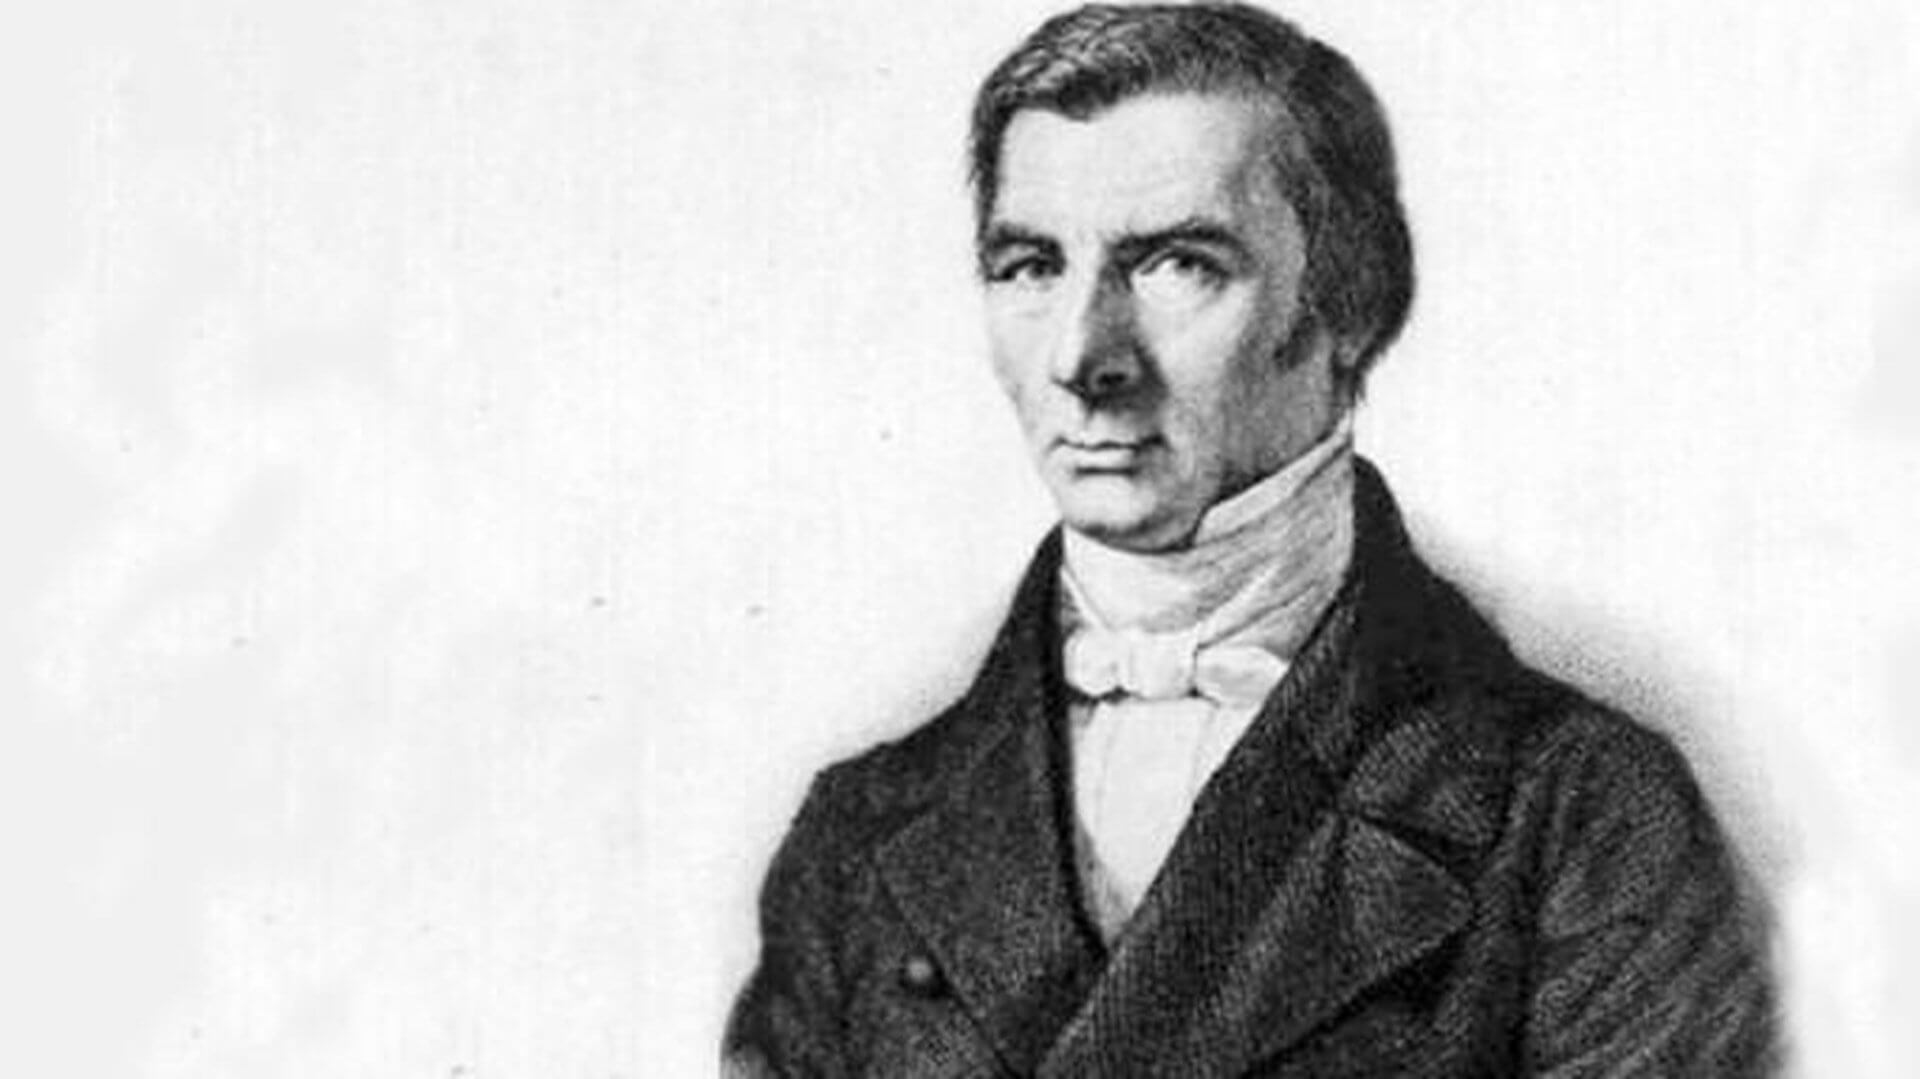 The Life and Work of Frédéric Bastiat: One Man's Call for Liberty